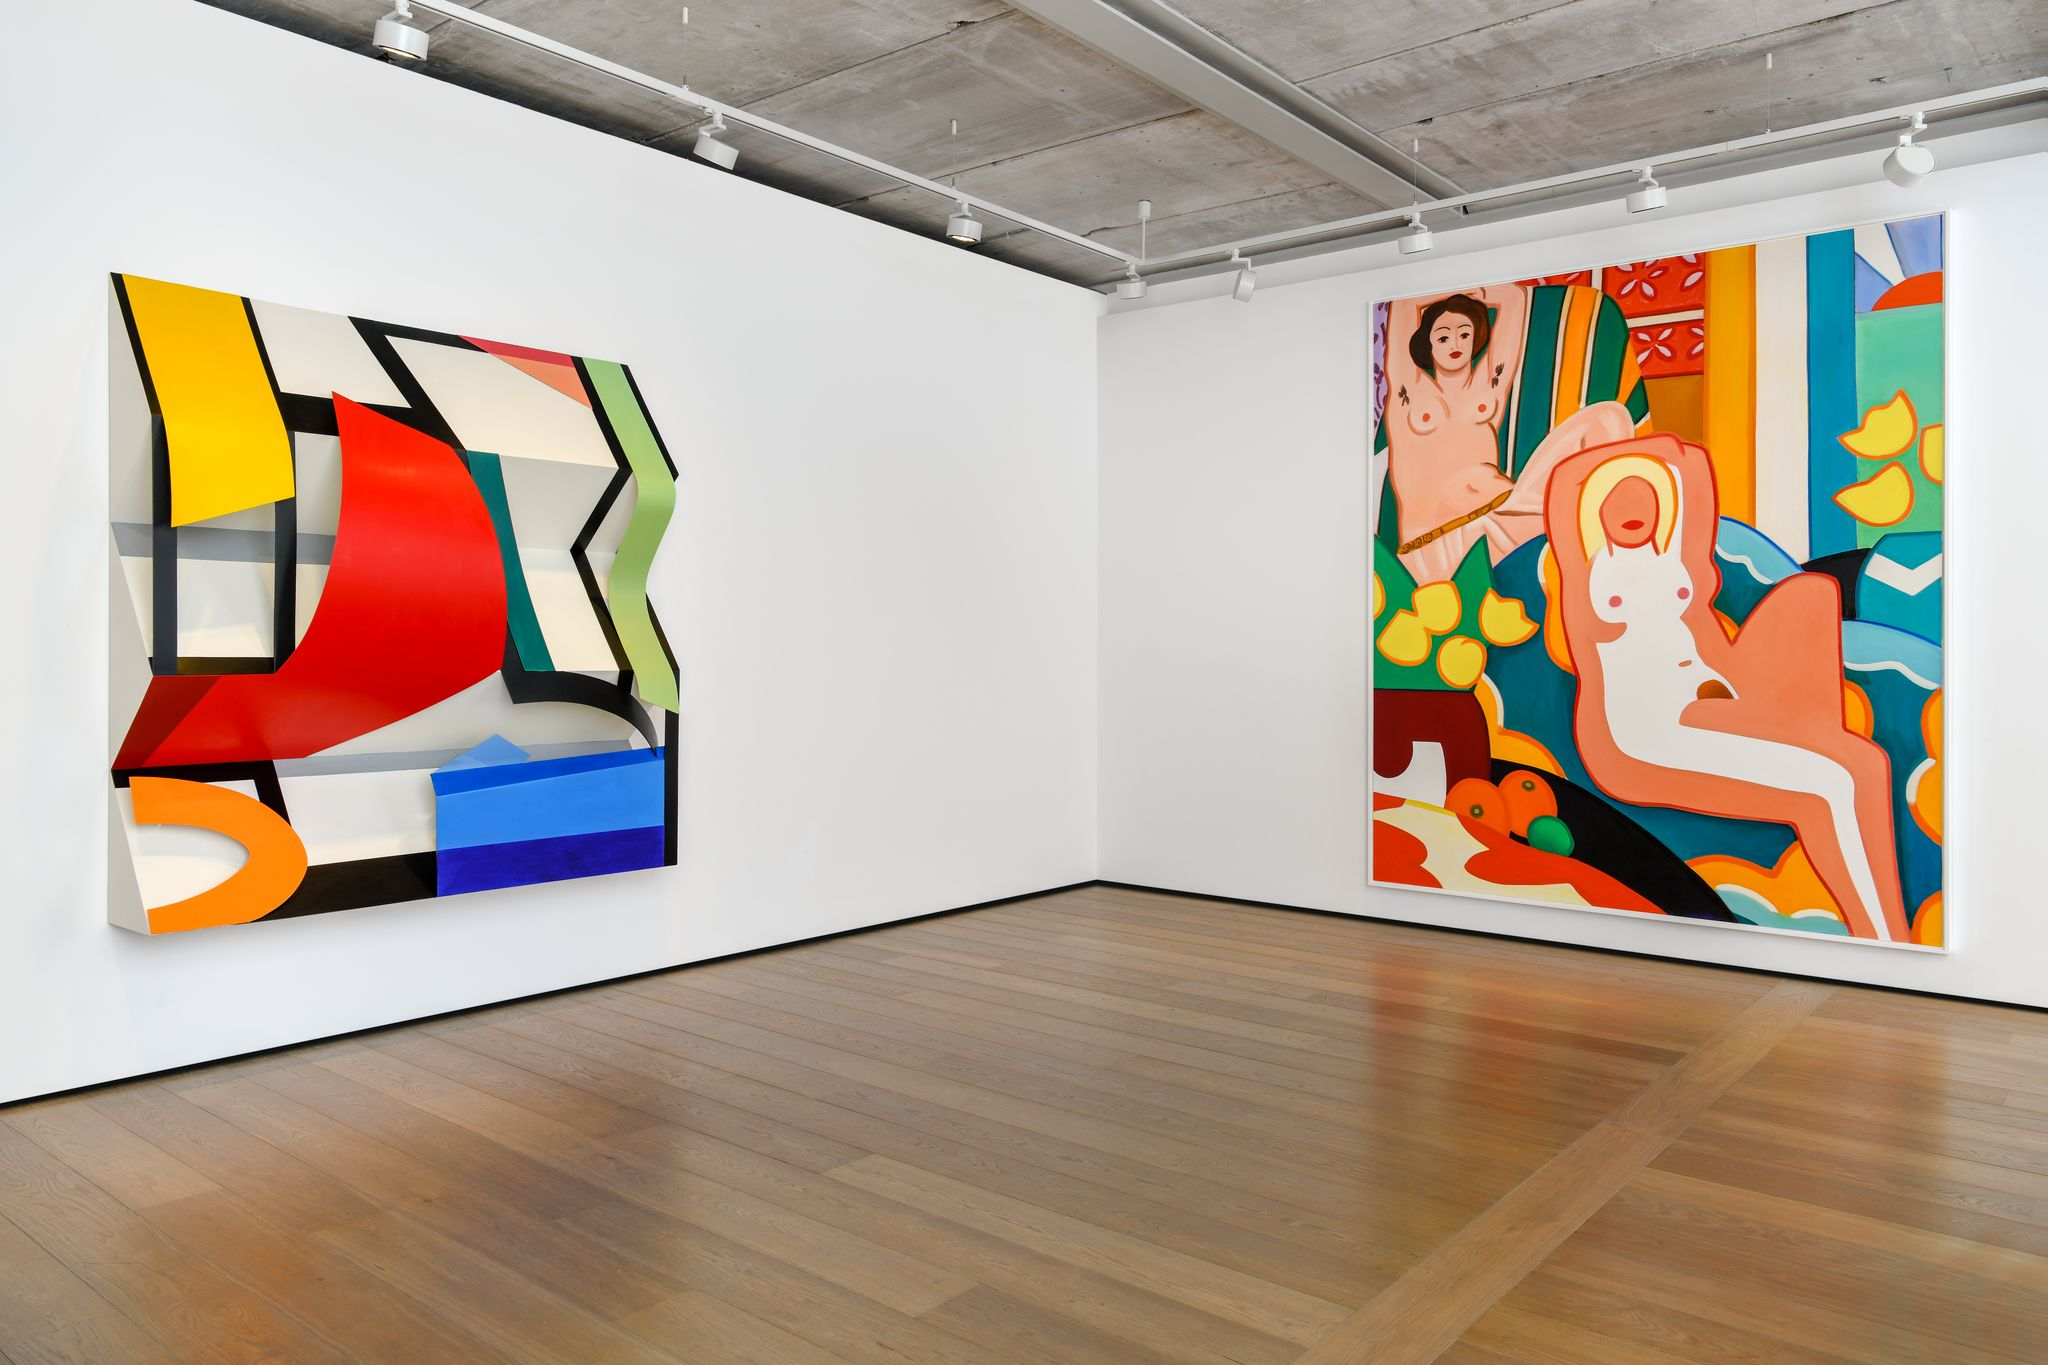 Artwork © Estate of Tom Wesselmann/Licensed by VAGA, New York and Almine Rech. Photos Melissa Castro-Duarte. Courtesy Almine Rech.